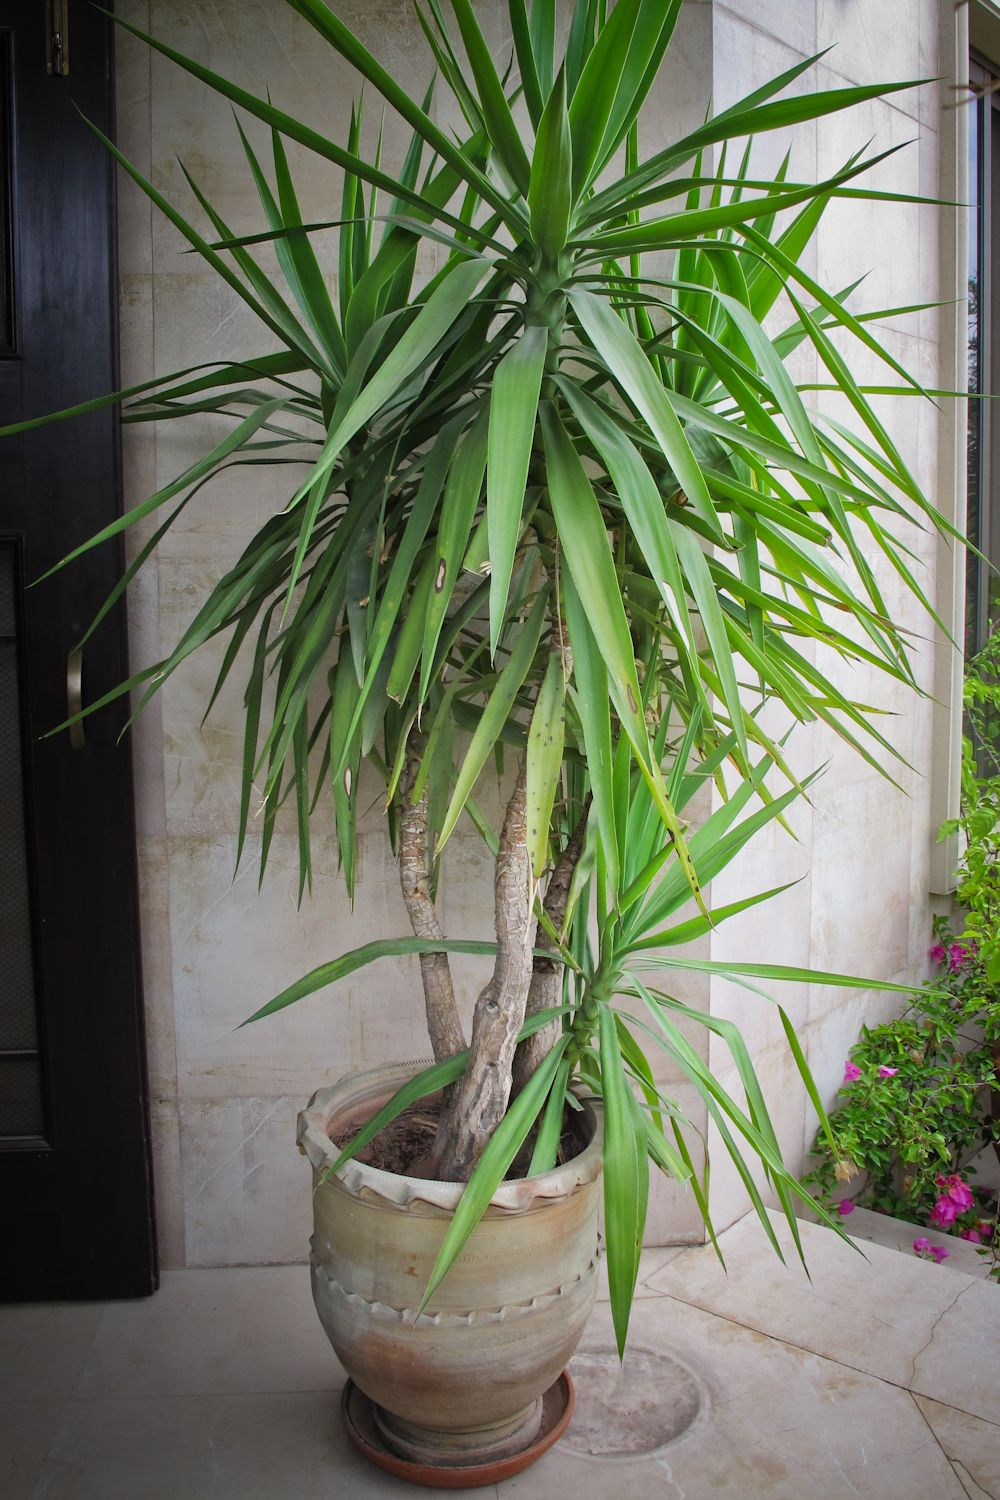 Yucca Plant Care Tips Growing Advice: Yucca Plant In A Terracotta Pot